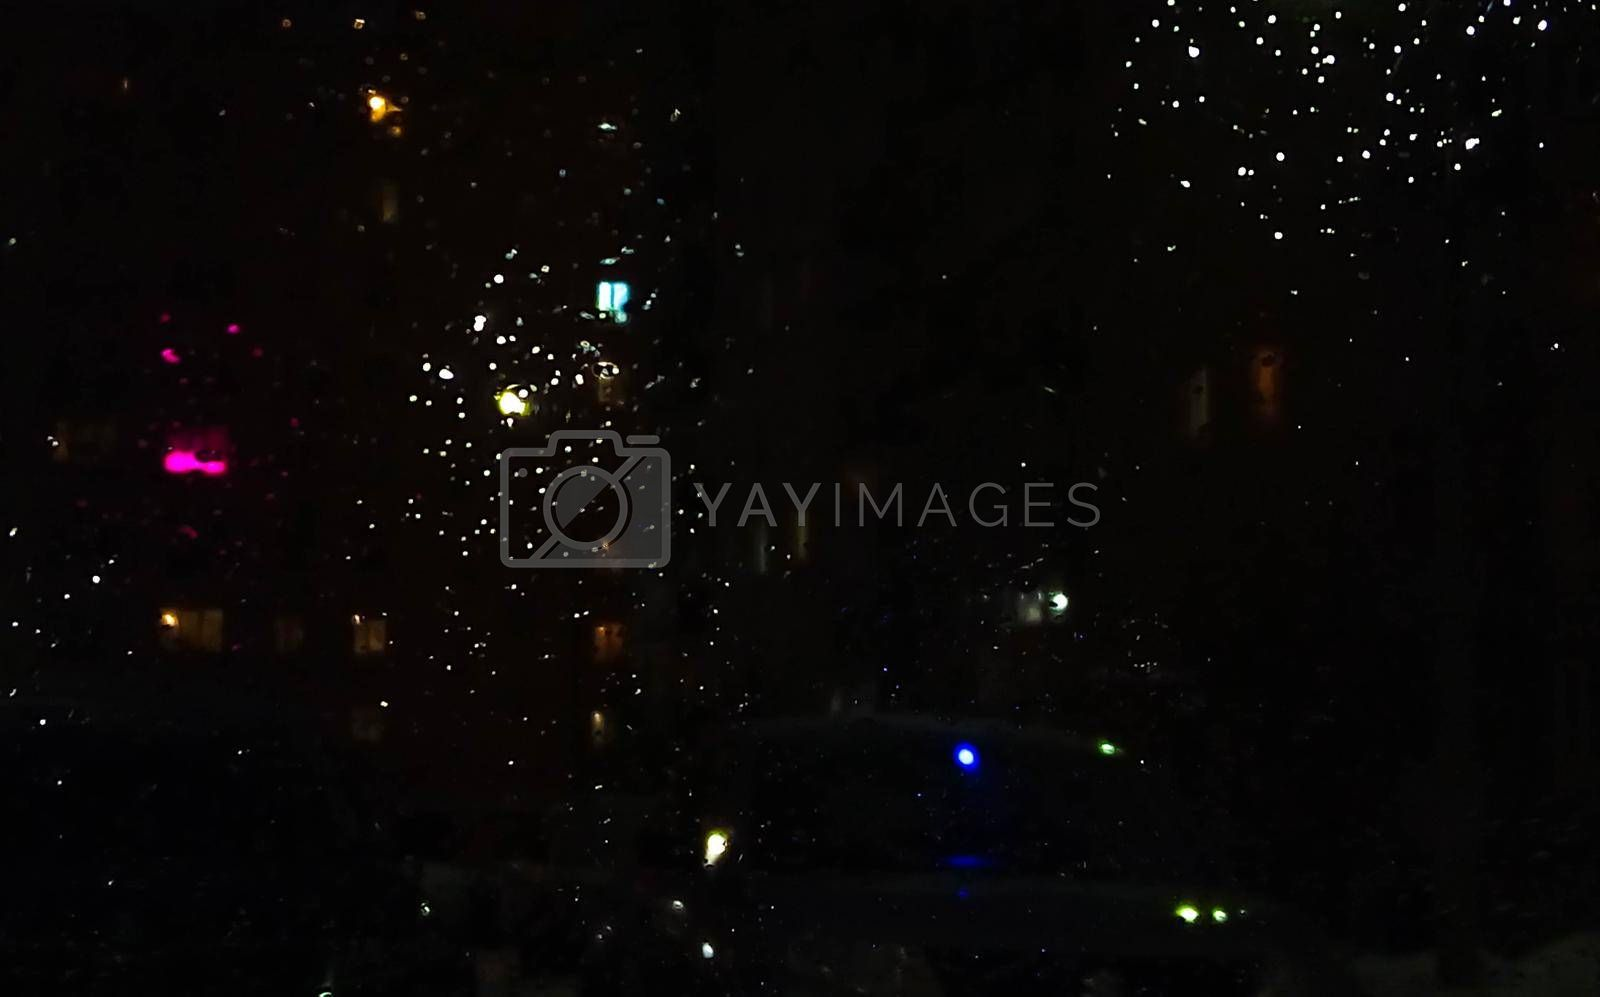 Reflection in a glass of glass. Blurred fires of distant houses. Window.